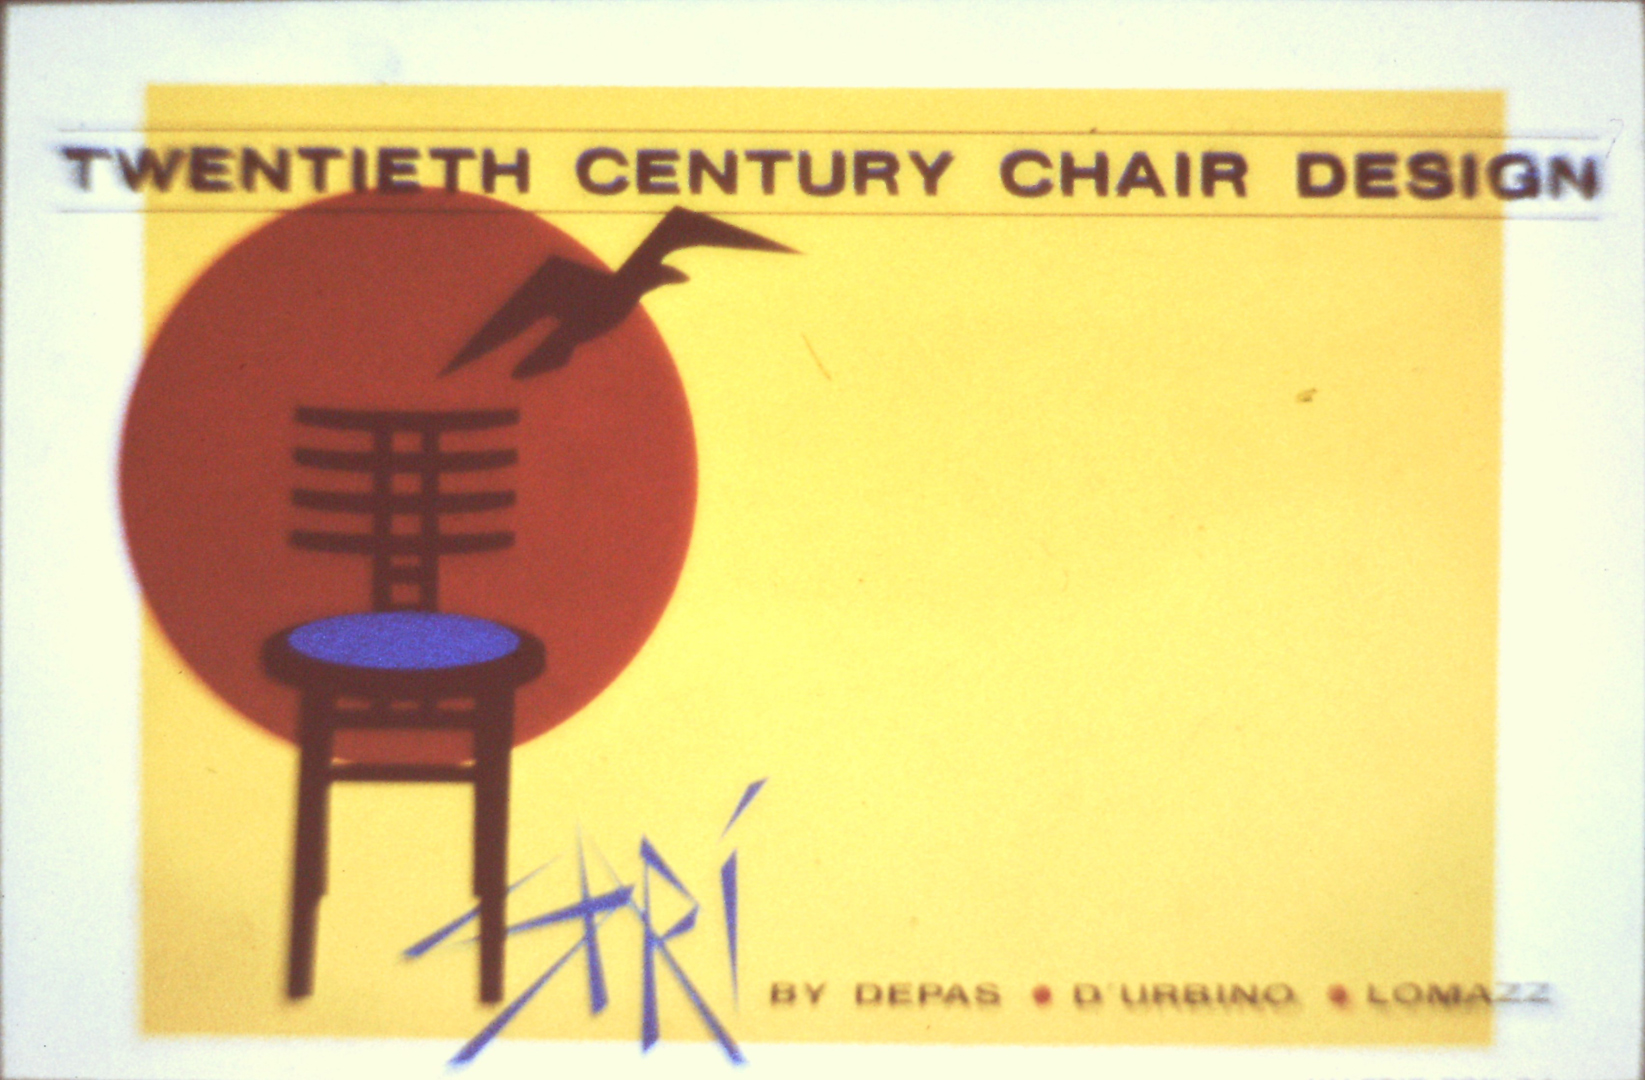 ©FISEA: First International Symposium on Electronic Art, Robin G. King, Computer Graphics and Animations as Agents of Personal Evolution in the Arts